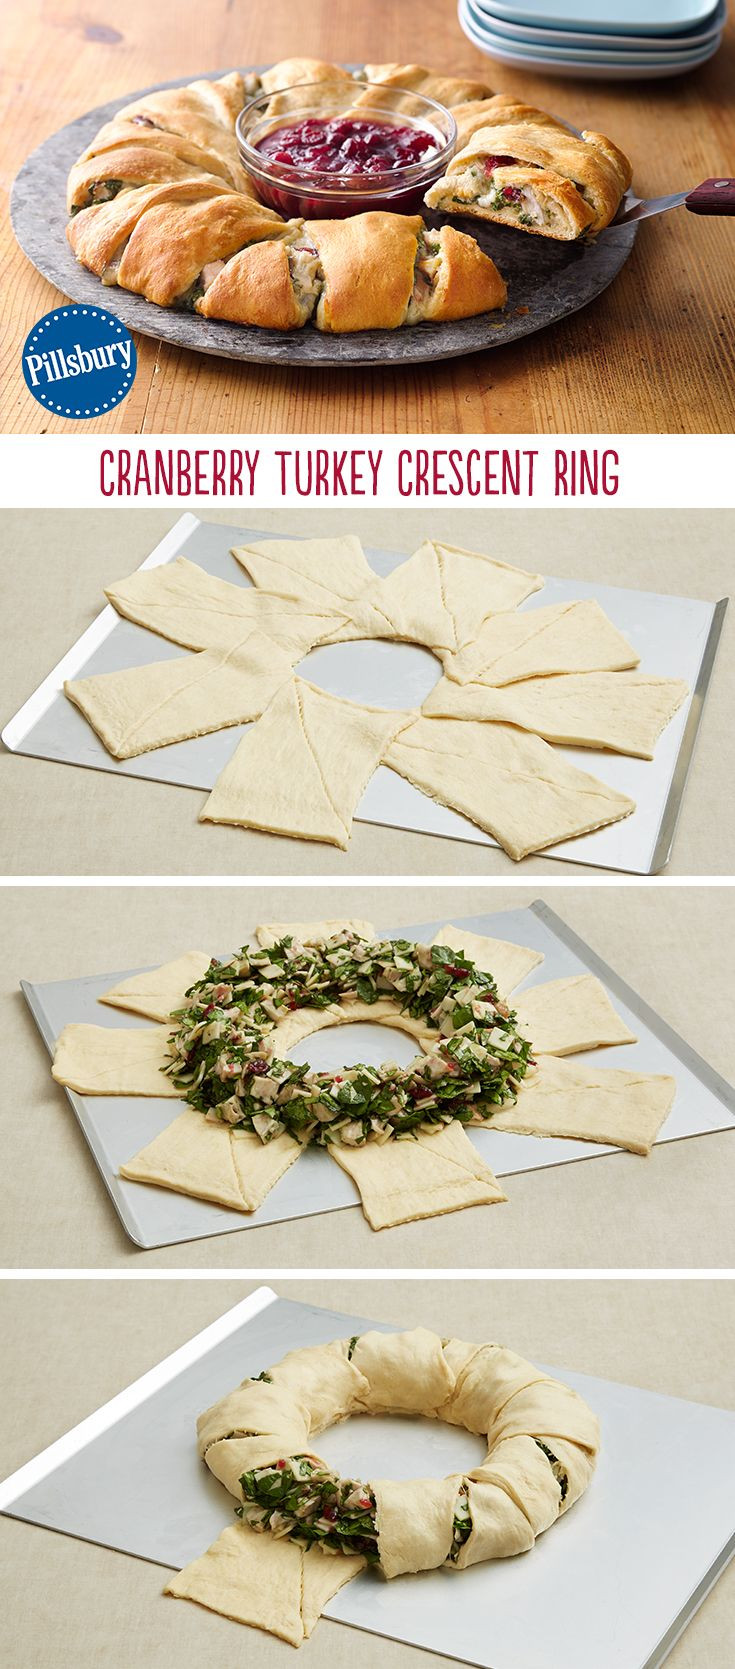 After Thanksgiving Turkey Recipes  Cranberry Turkey Crescent Ring Recipe